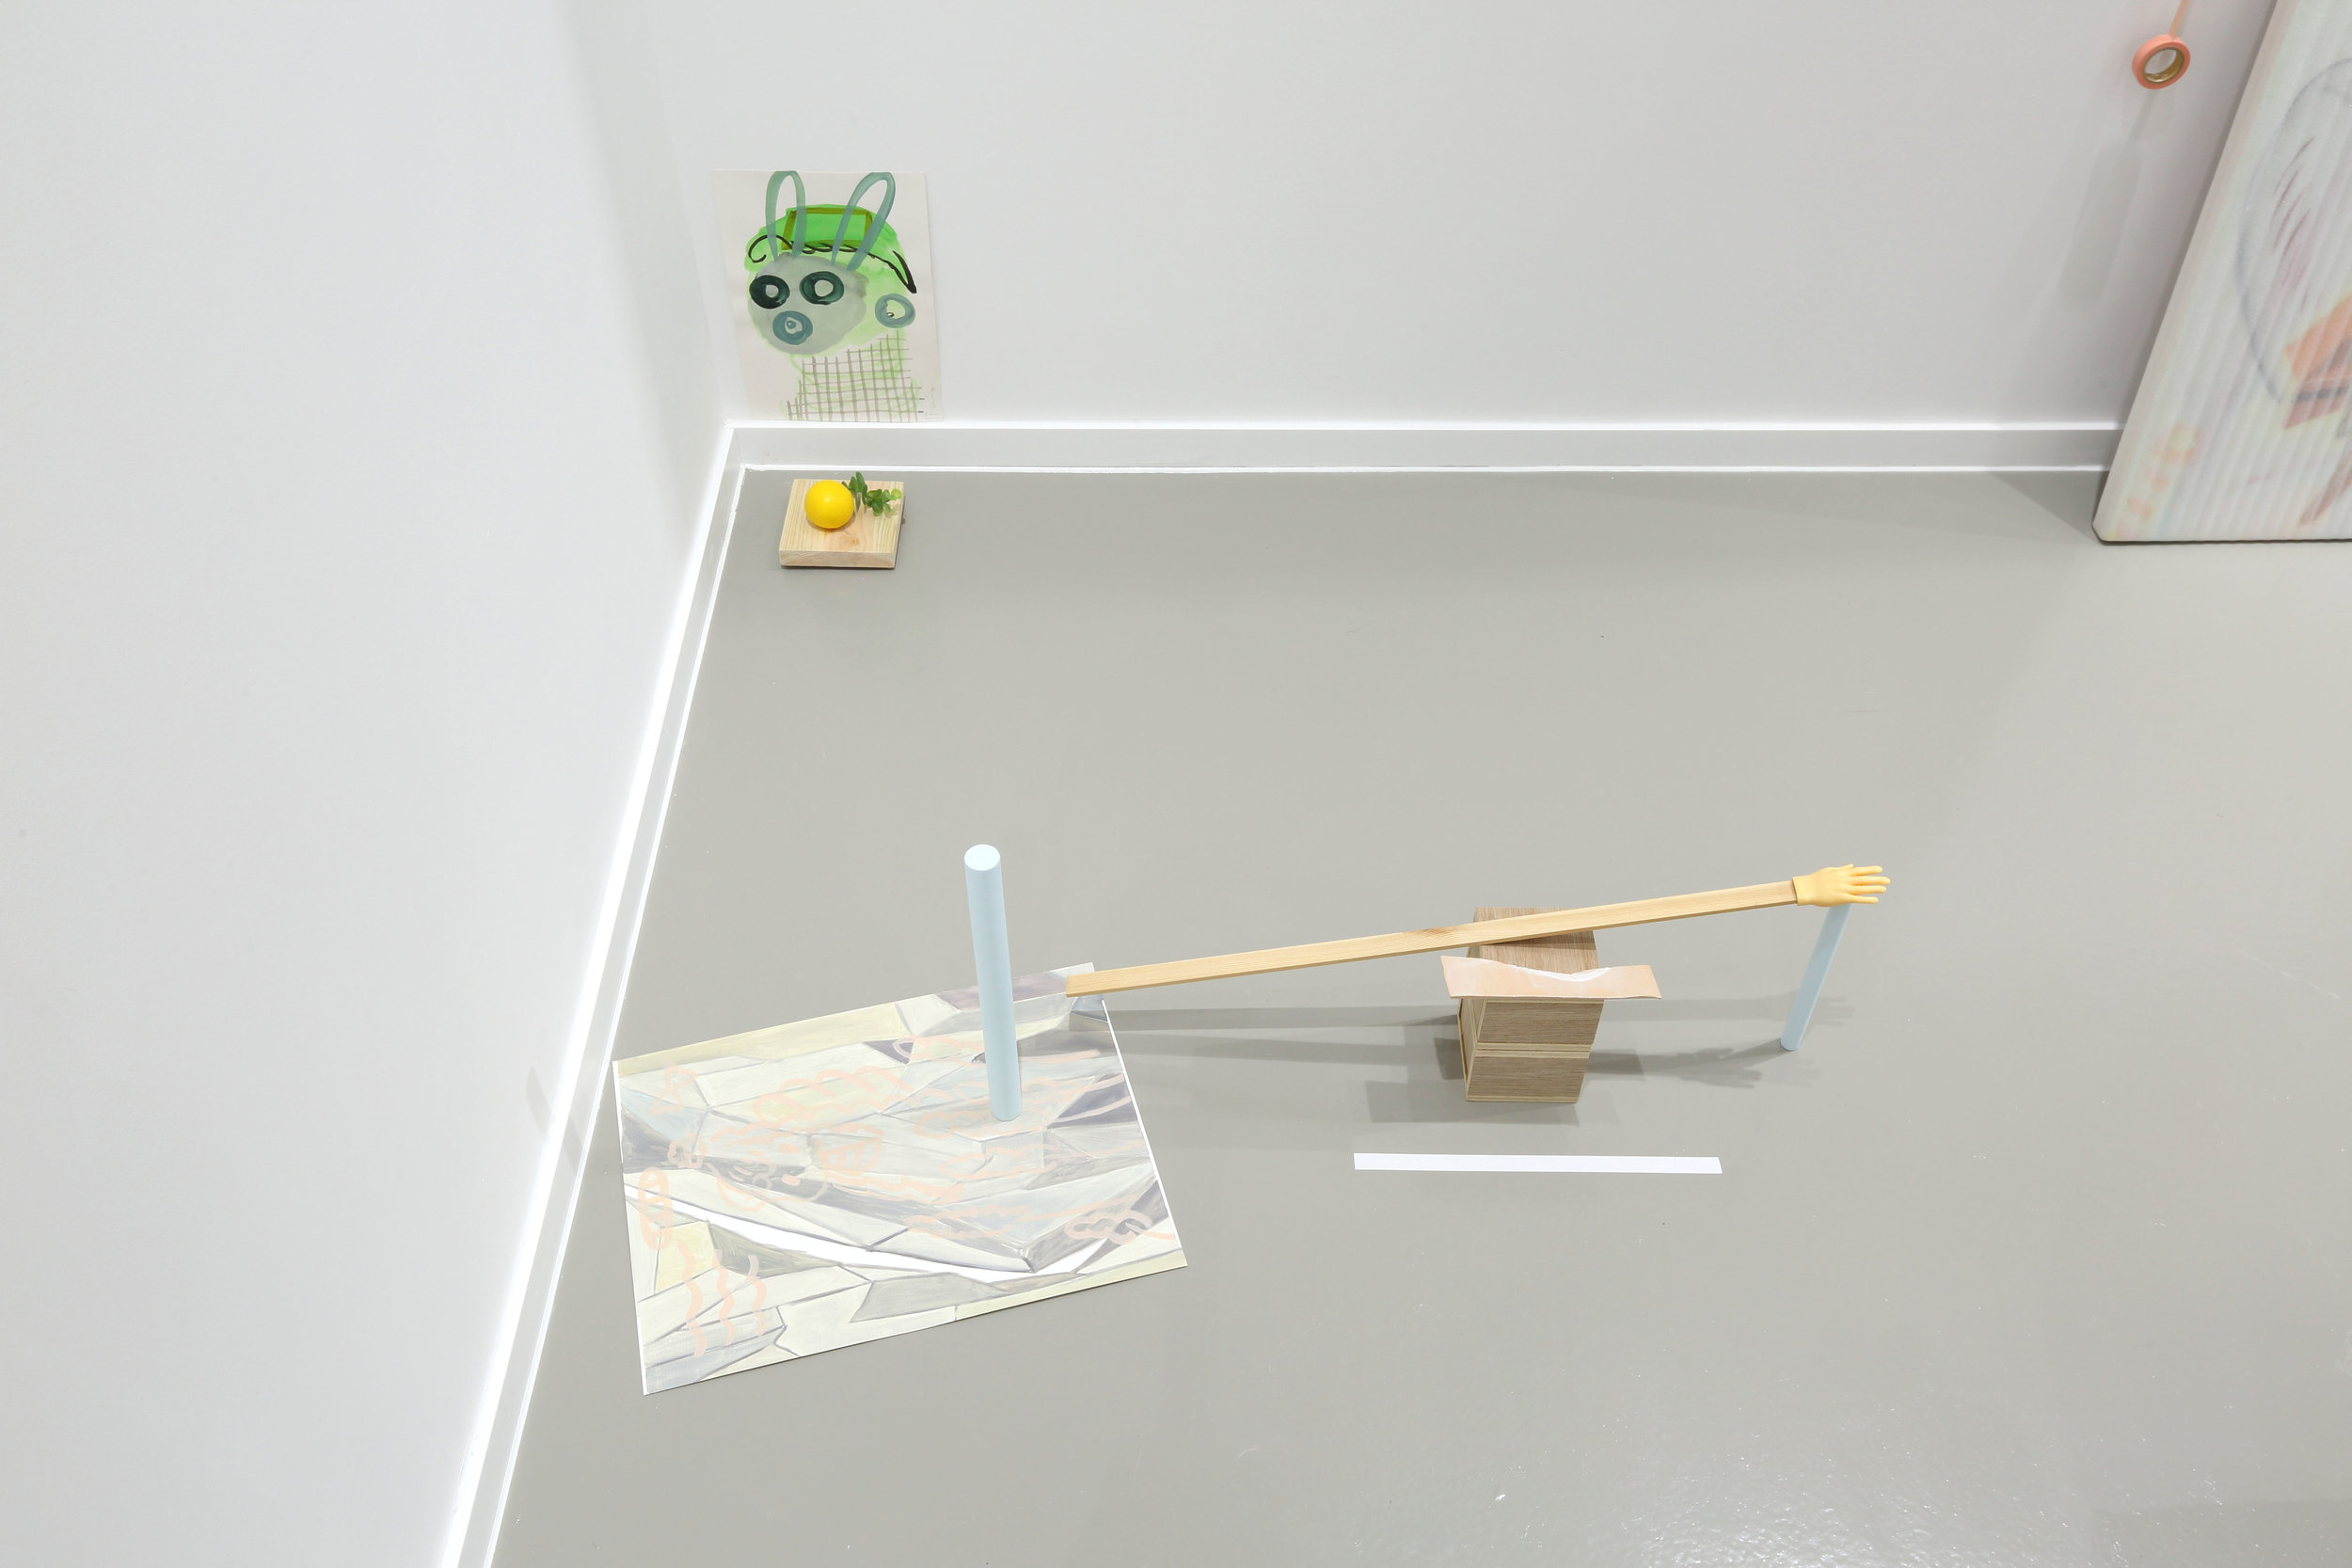 Spaced-out person/ My multiple angel    2019, Watercolor on paper, clay, artificial leaf, wood, Dimensions variable    /    2019, Oil on paper, glazed ceramic, wood stick, wood box, masking tape ready-made object, Dimensions variable